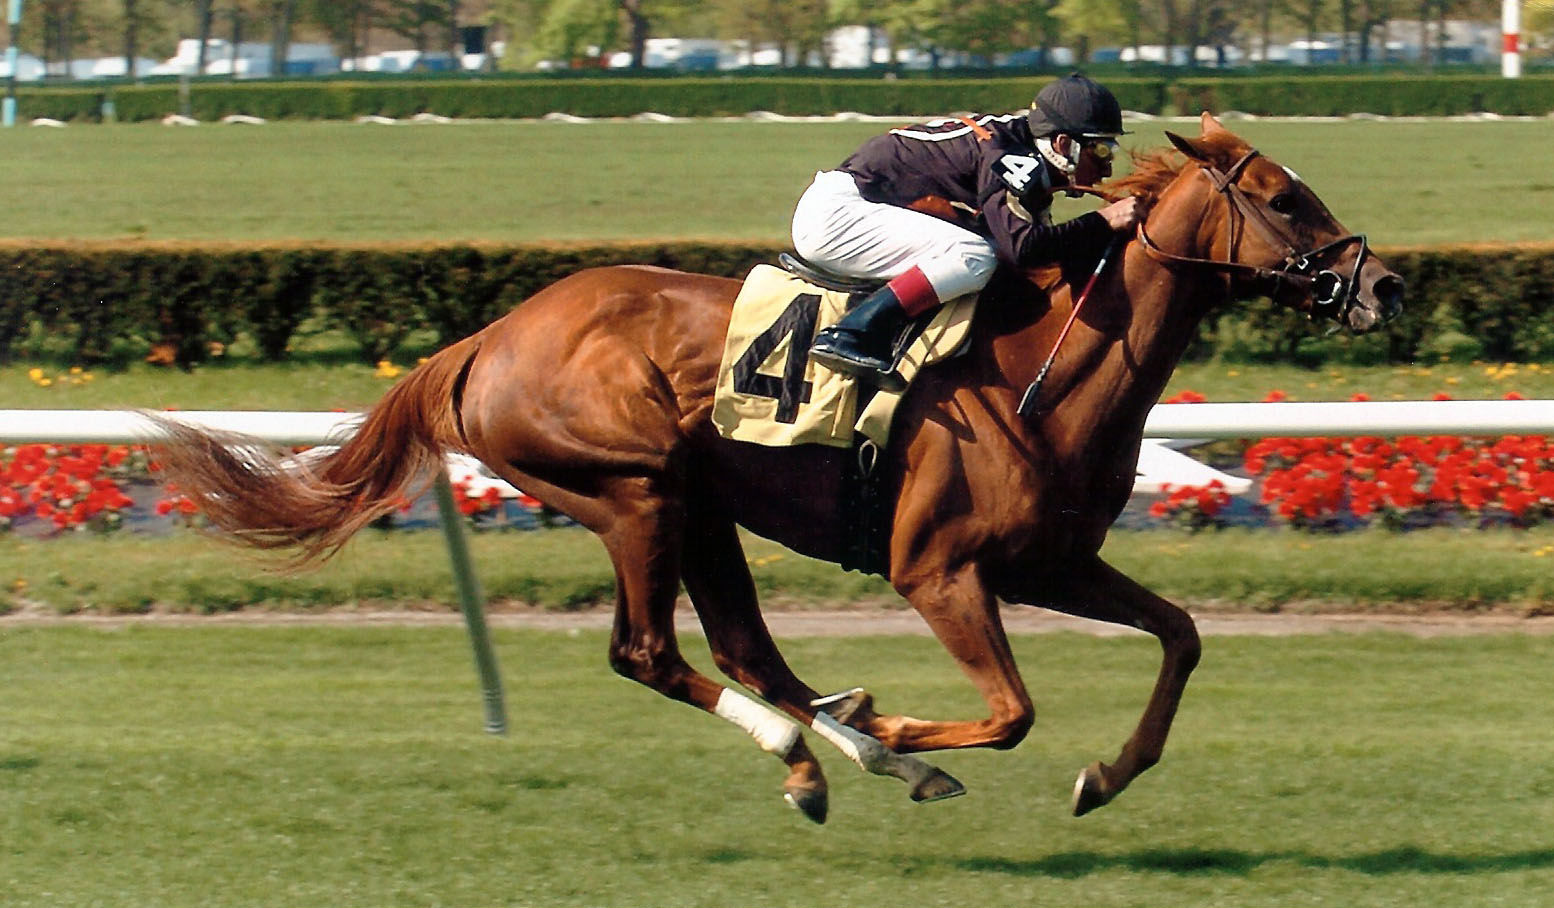 Ambidaxtrous, winning the 7th race at Belmont Park on April 30, 2008.